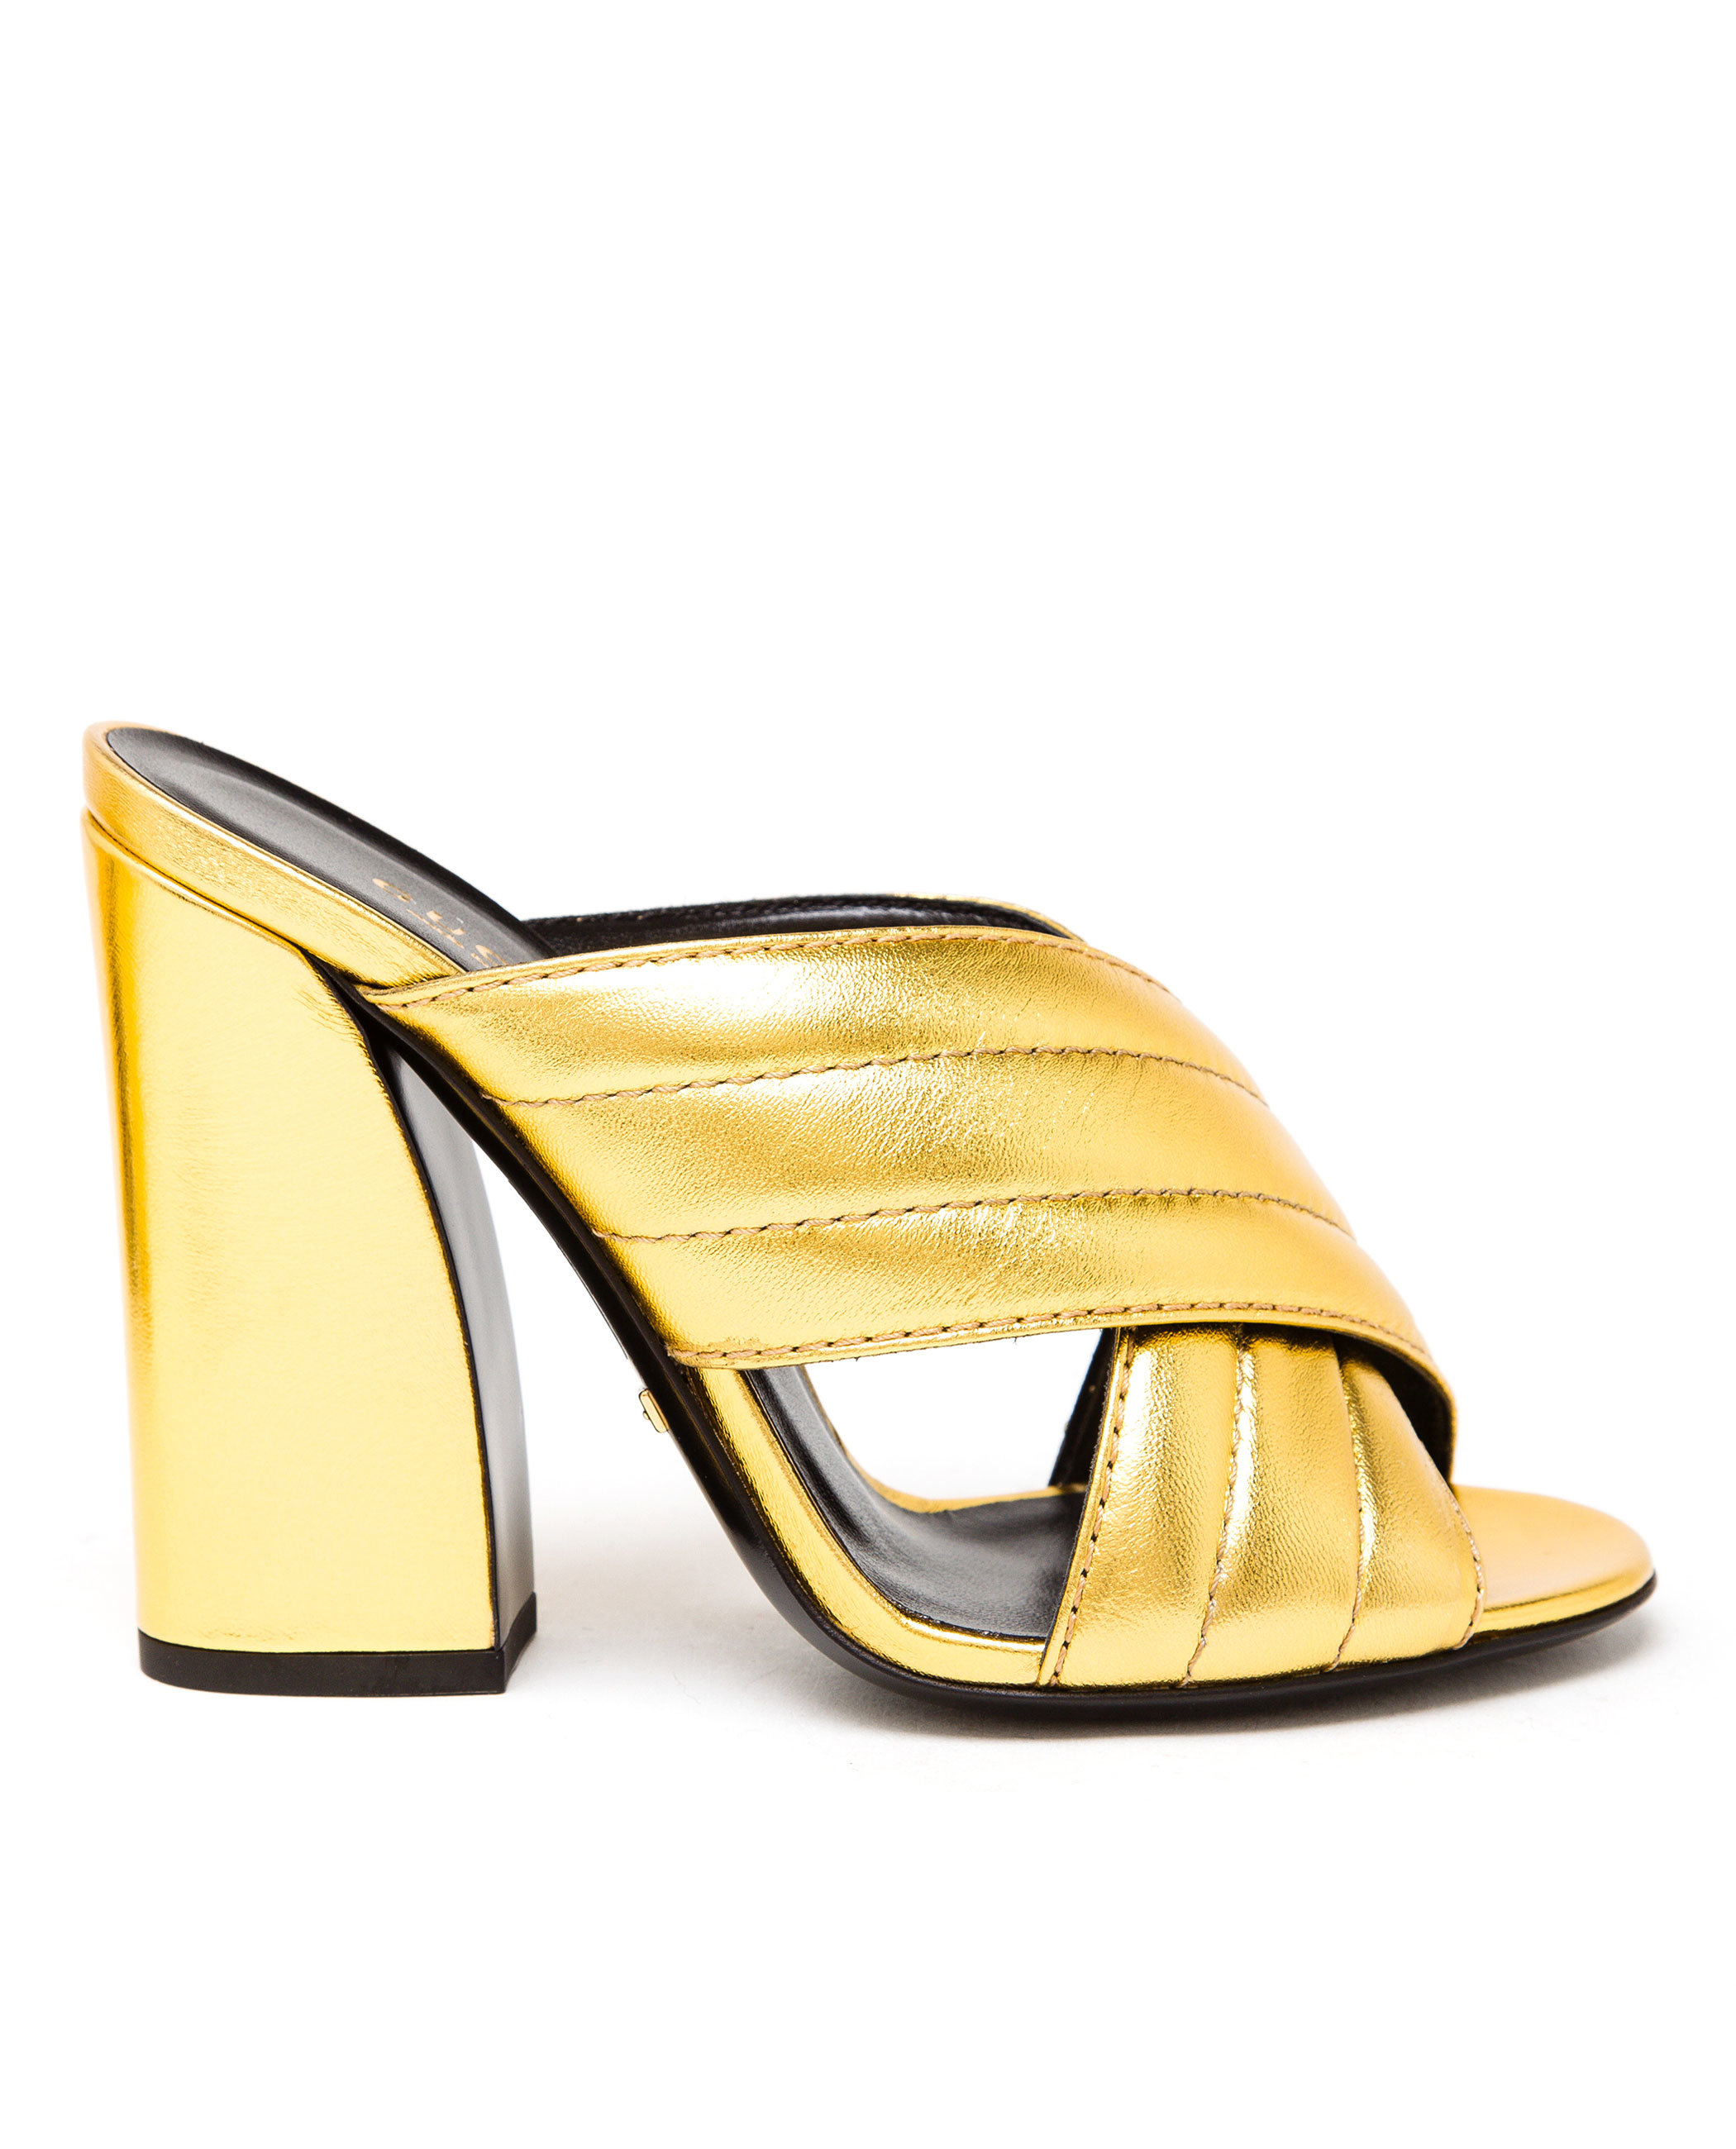 Gucci Padded Metallic Leather Mules - Lyst